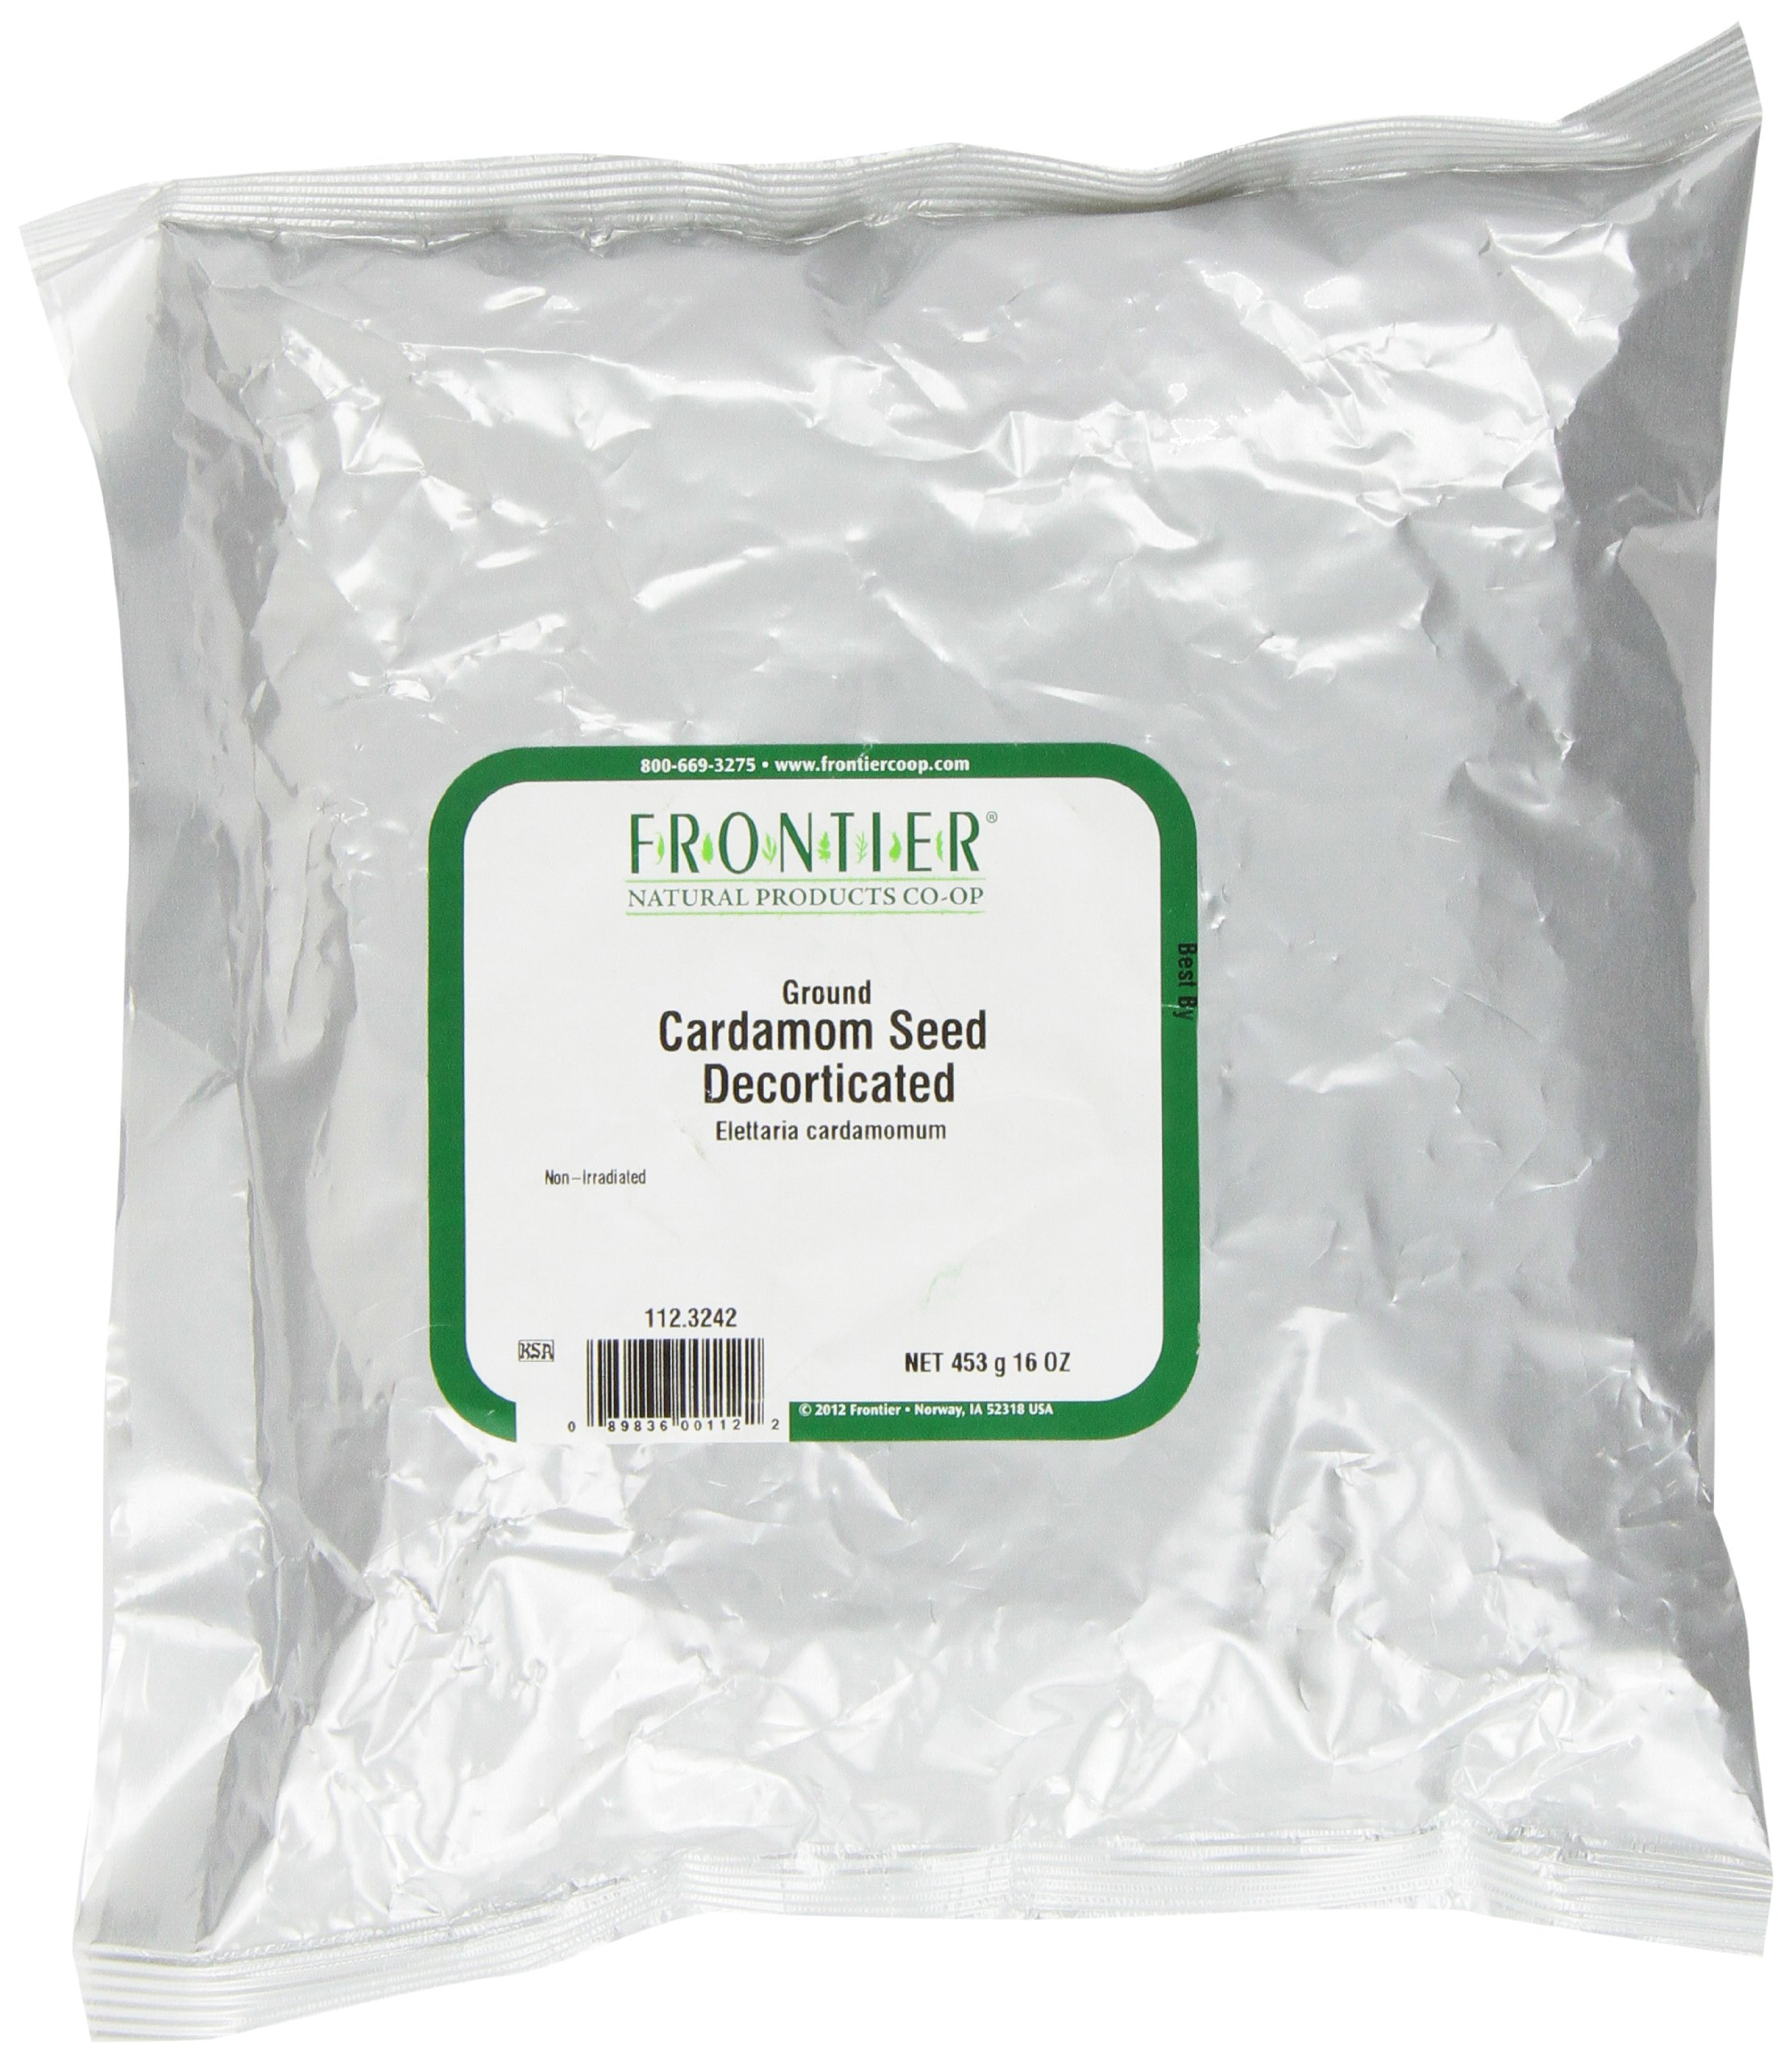 Frontier Ground Cardamom Seed, Decorticated, 16 Ounce Bag